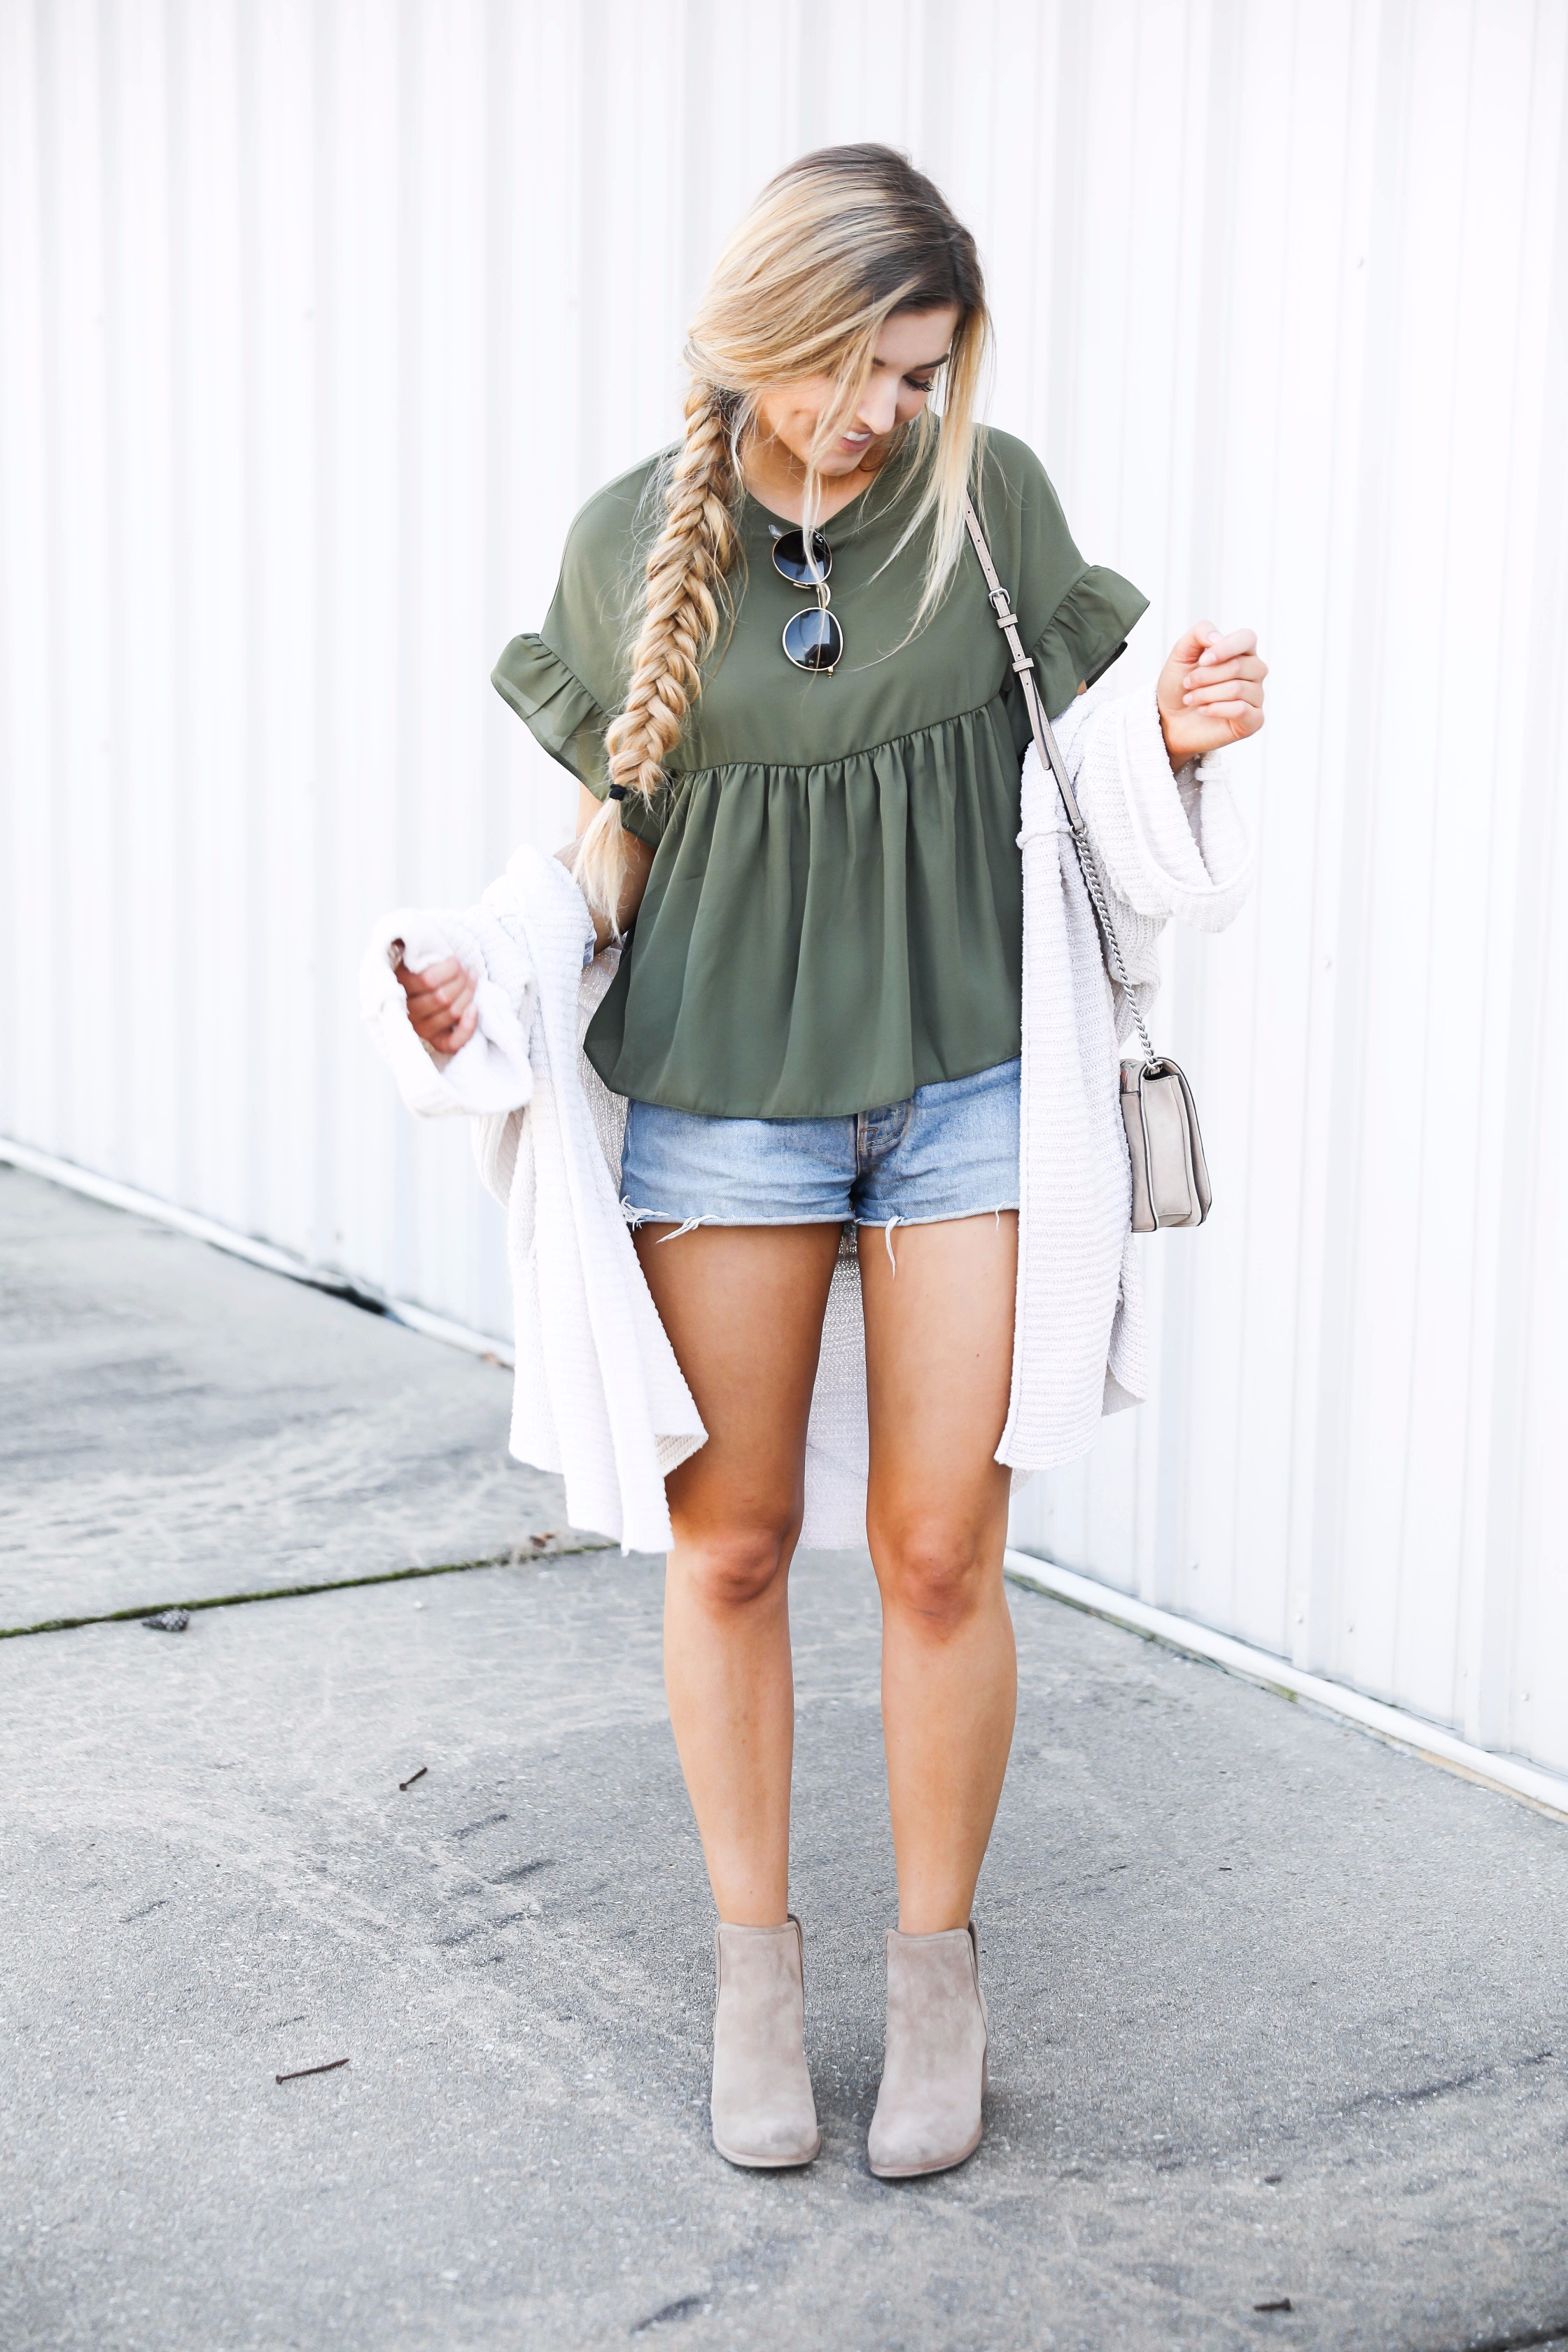 Olive ruffle top with a free people slouchy cardigan! I love olive for fall. This look is autumn perfection with the booties! Find the details on fashion blog daily dose of charm by lauren lindmark